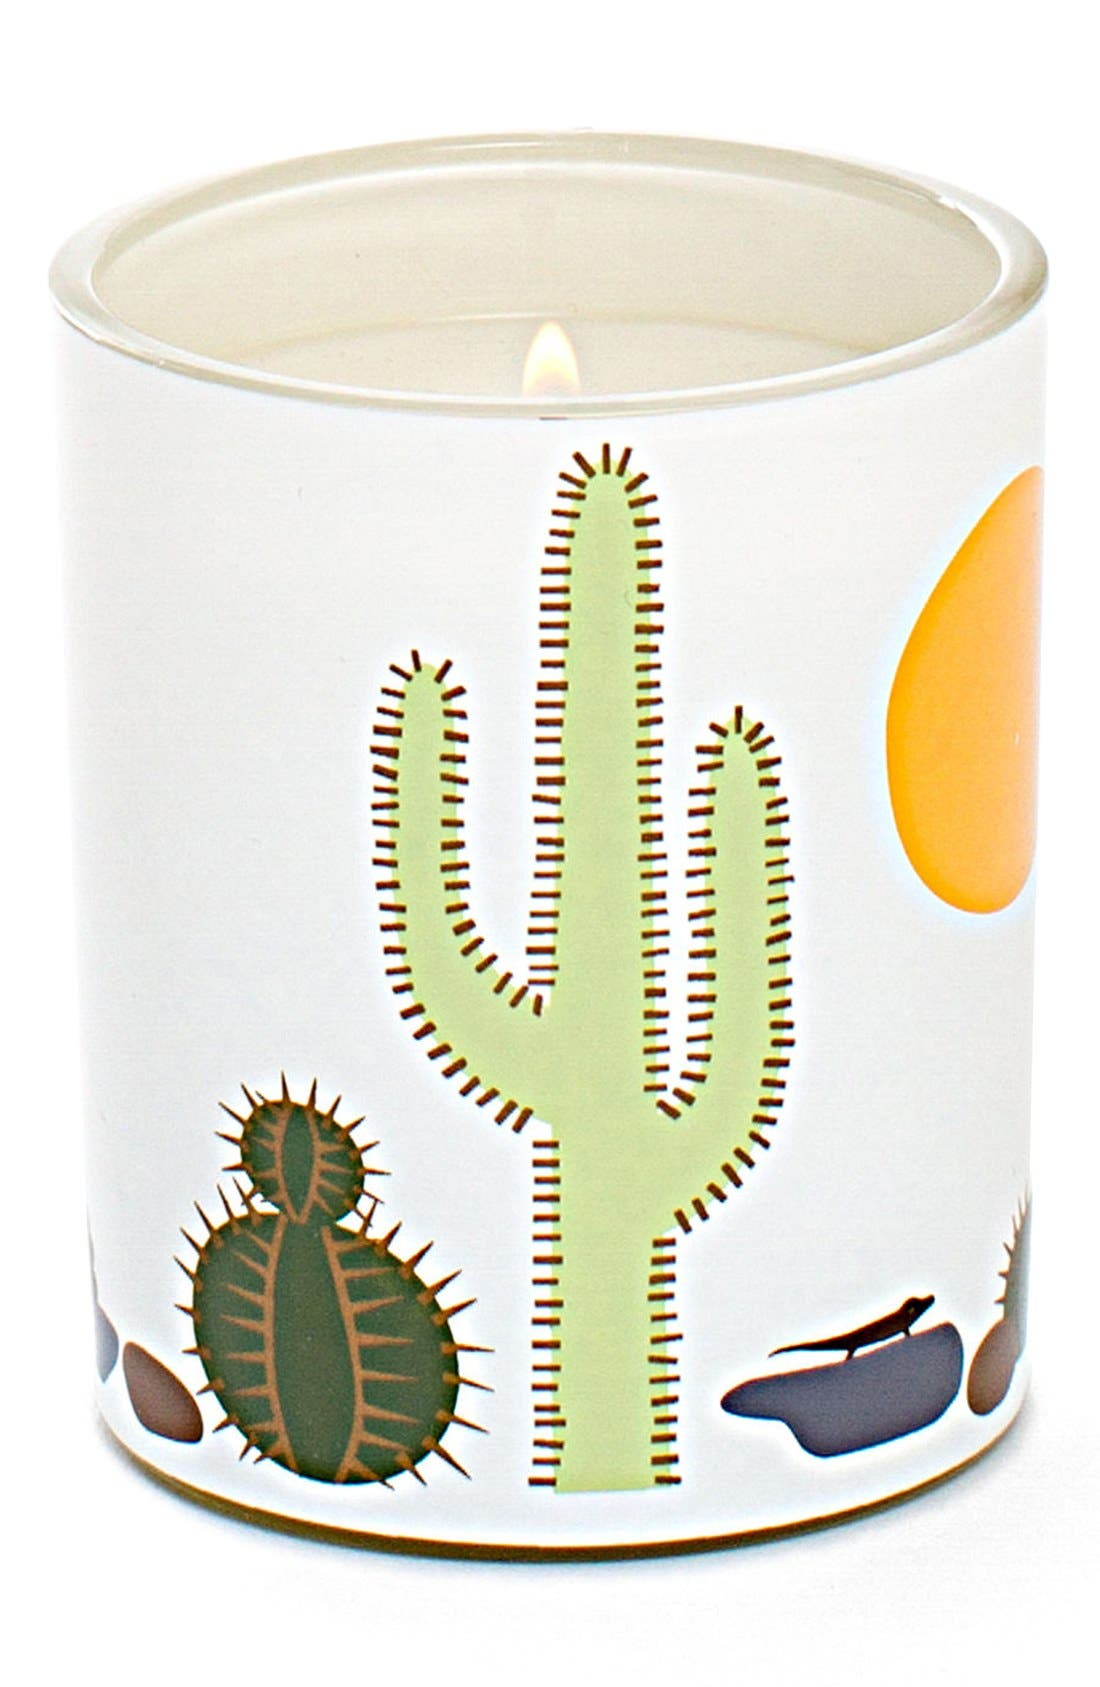 Alternate Image 1 Selected - R. Nichols 'Spirit' Scented Candle